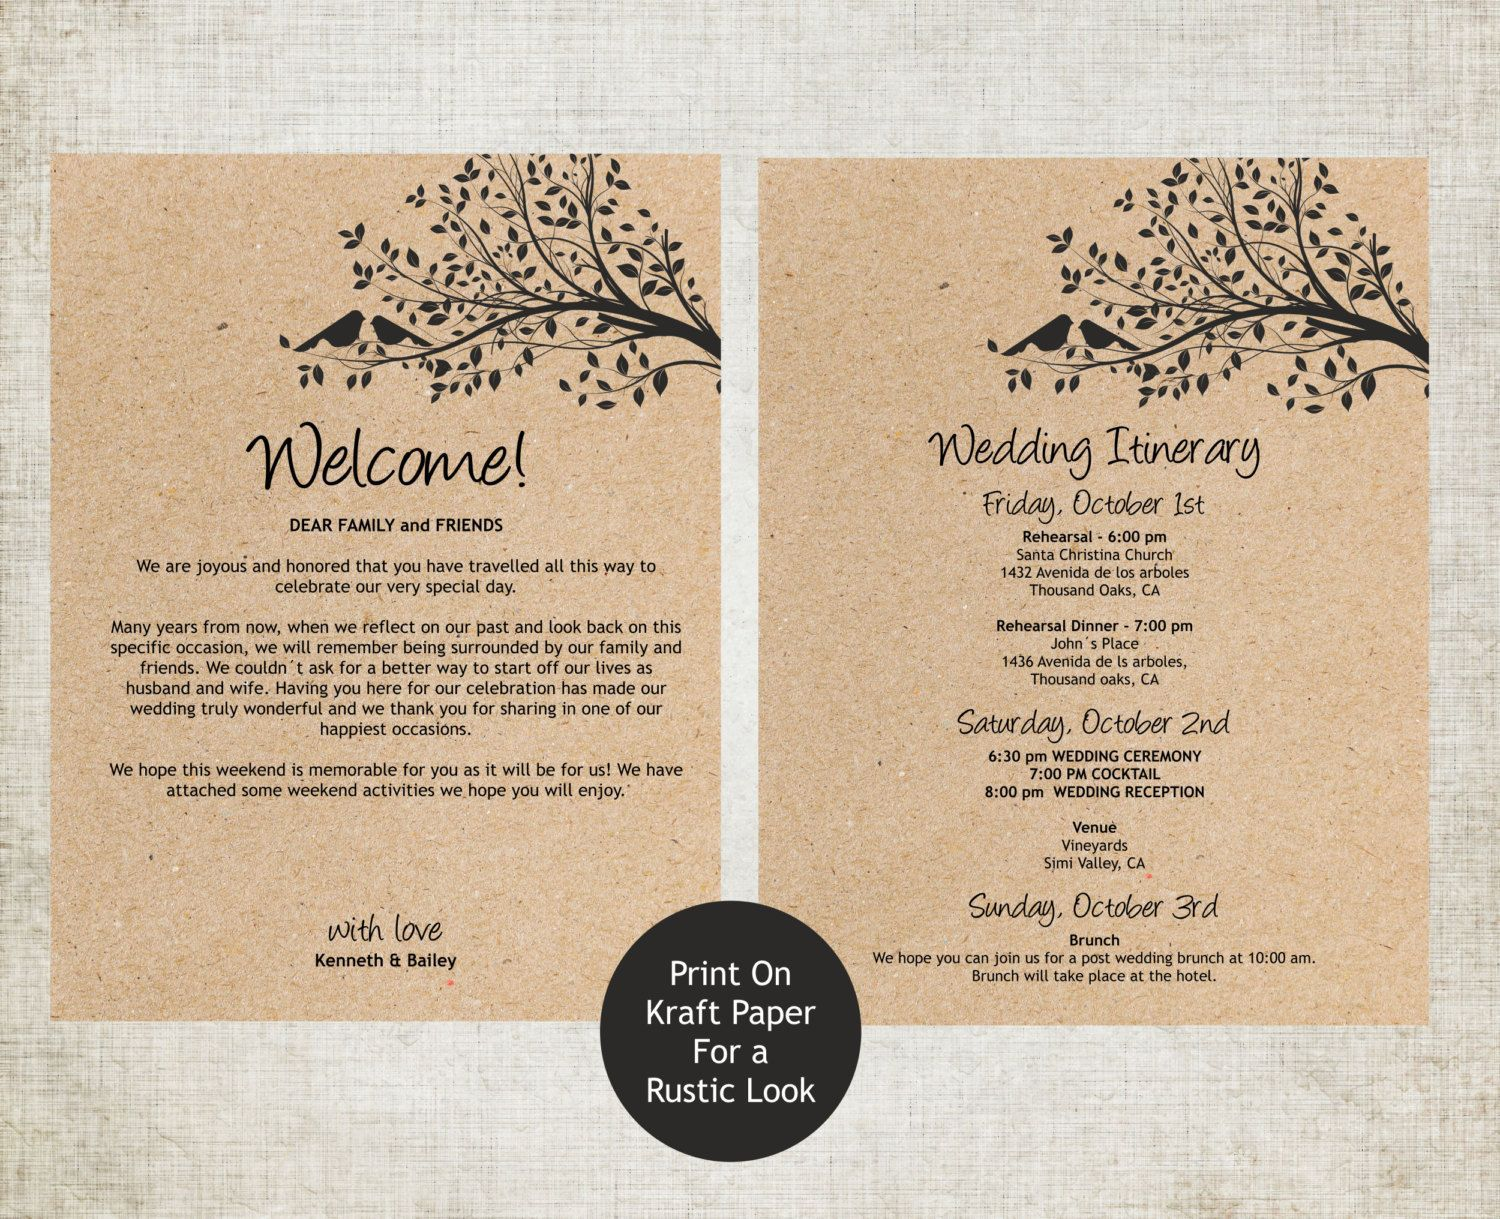 004 Rare Destination Wedding Welcome Letter Template Concept  And ItineraryFull